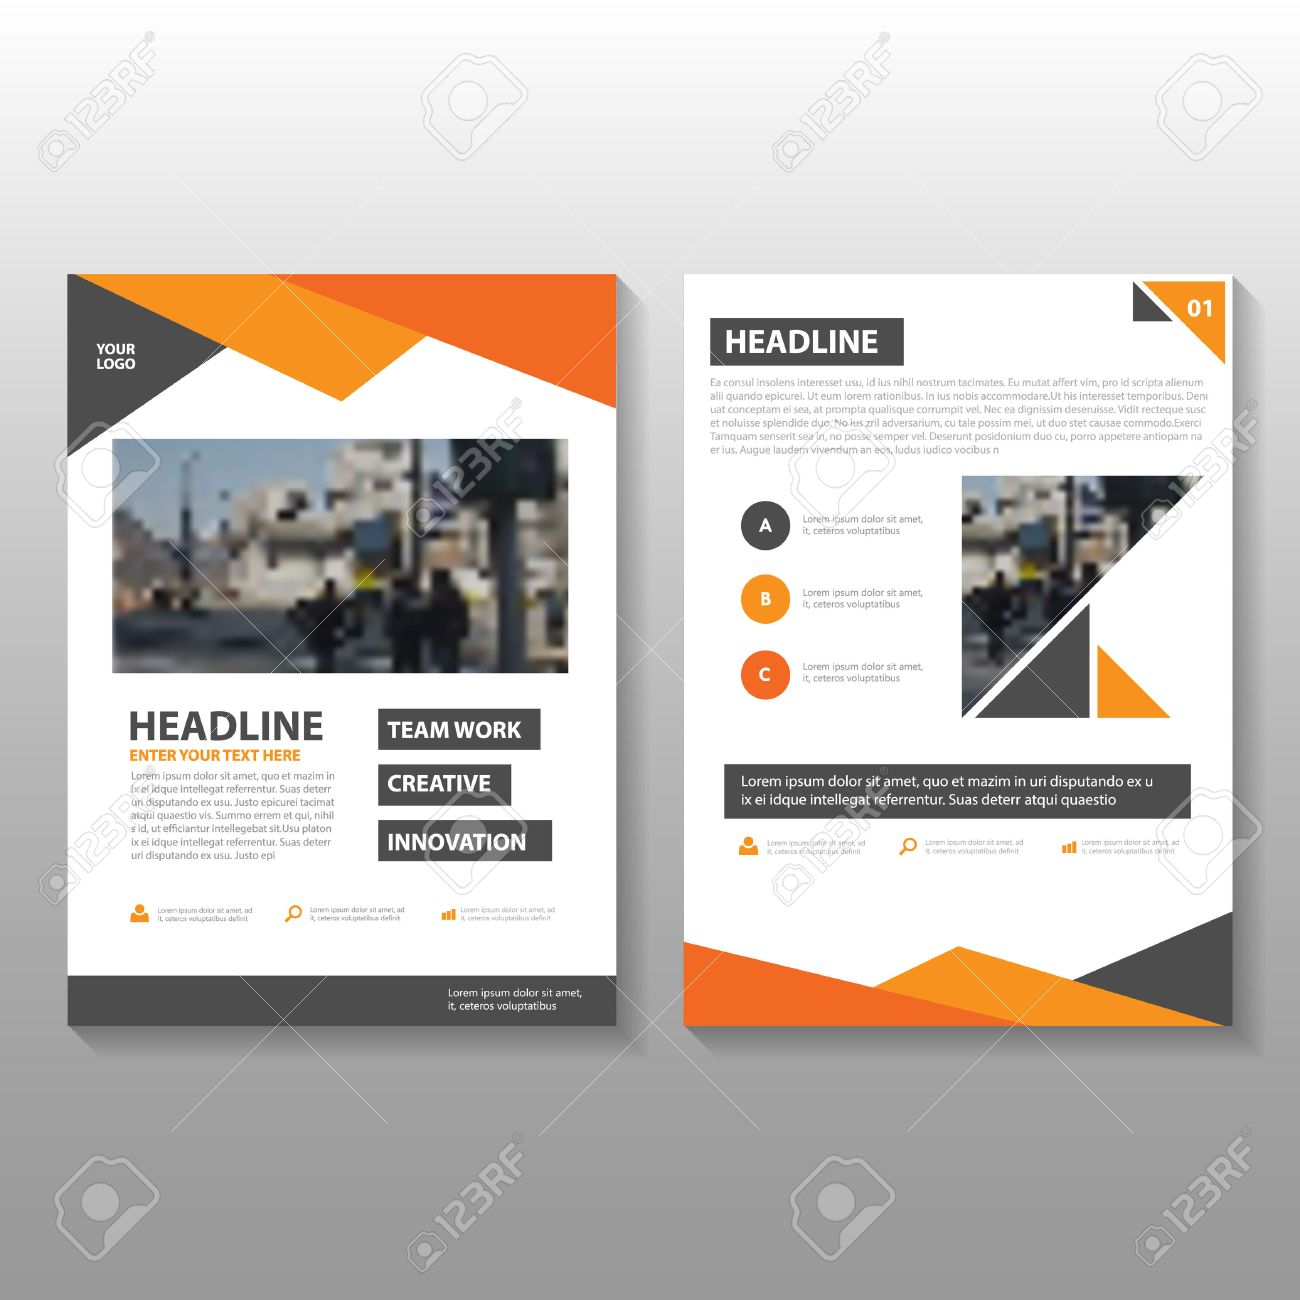 Orange Vector Annual Report Leaflet Brochure Flyer Template Design - Brochure flyer templates